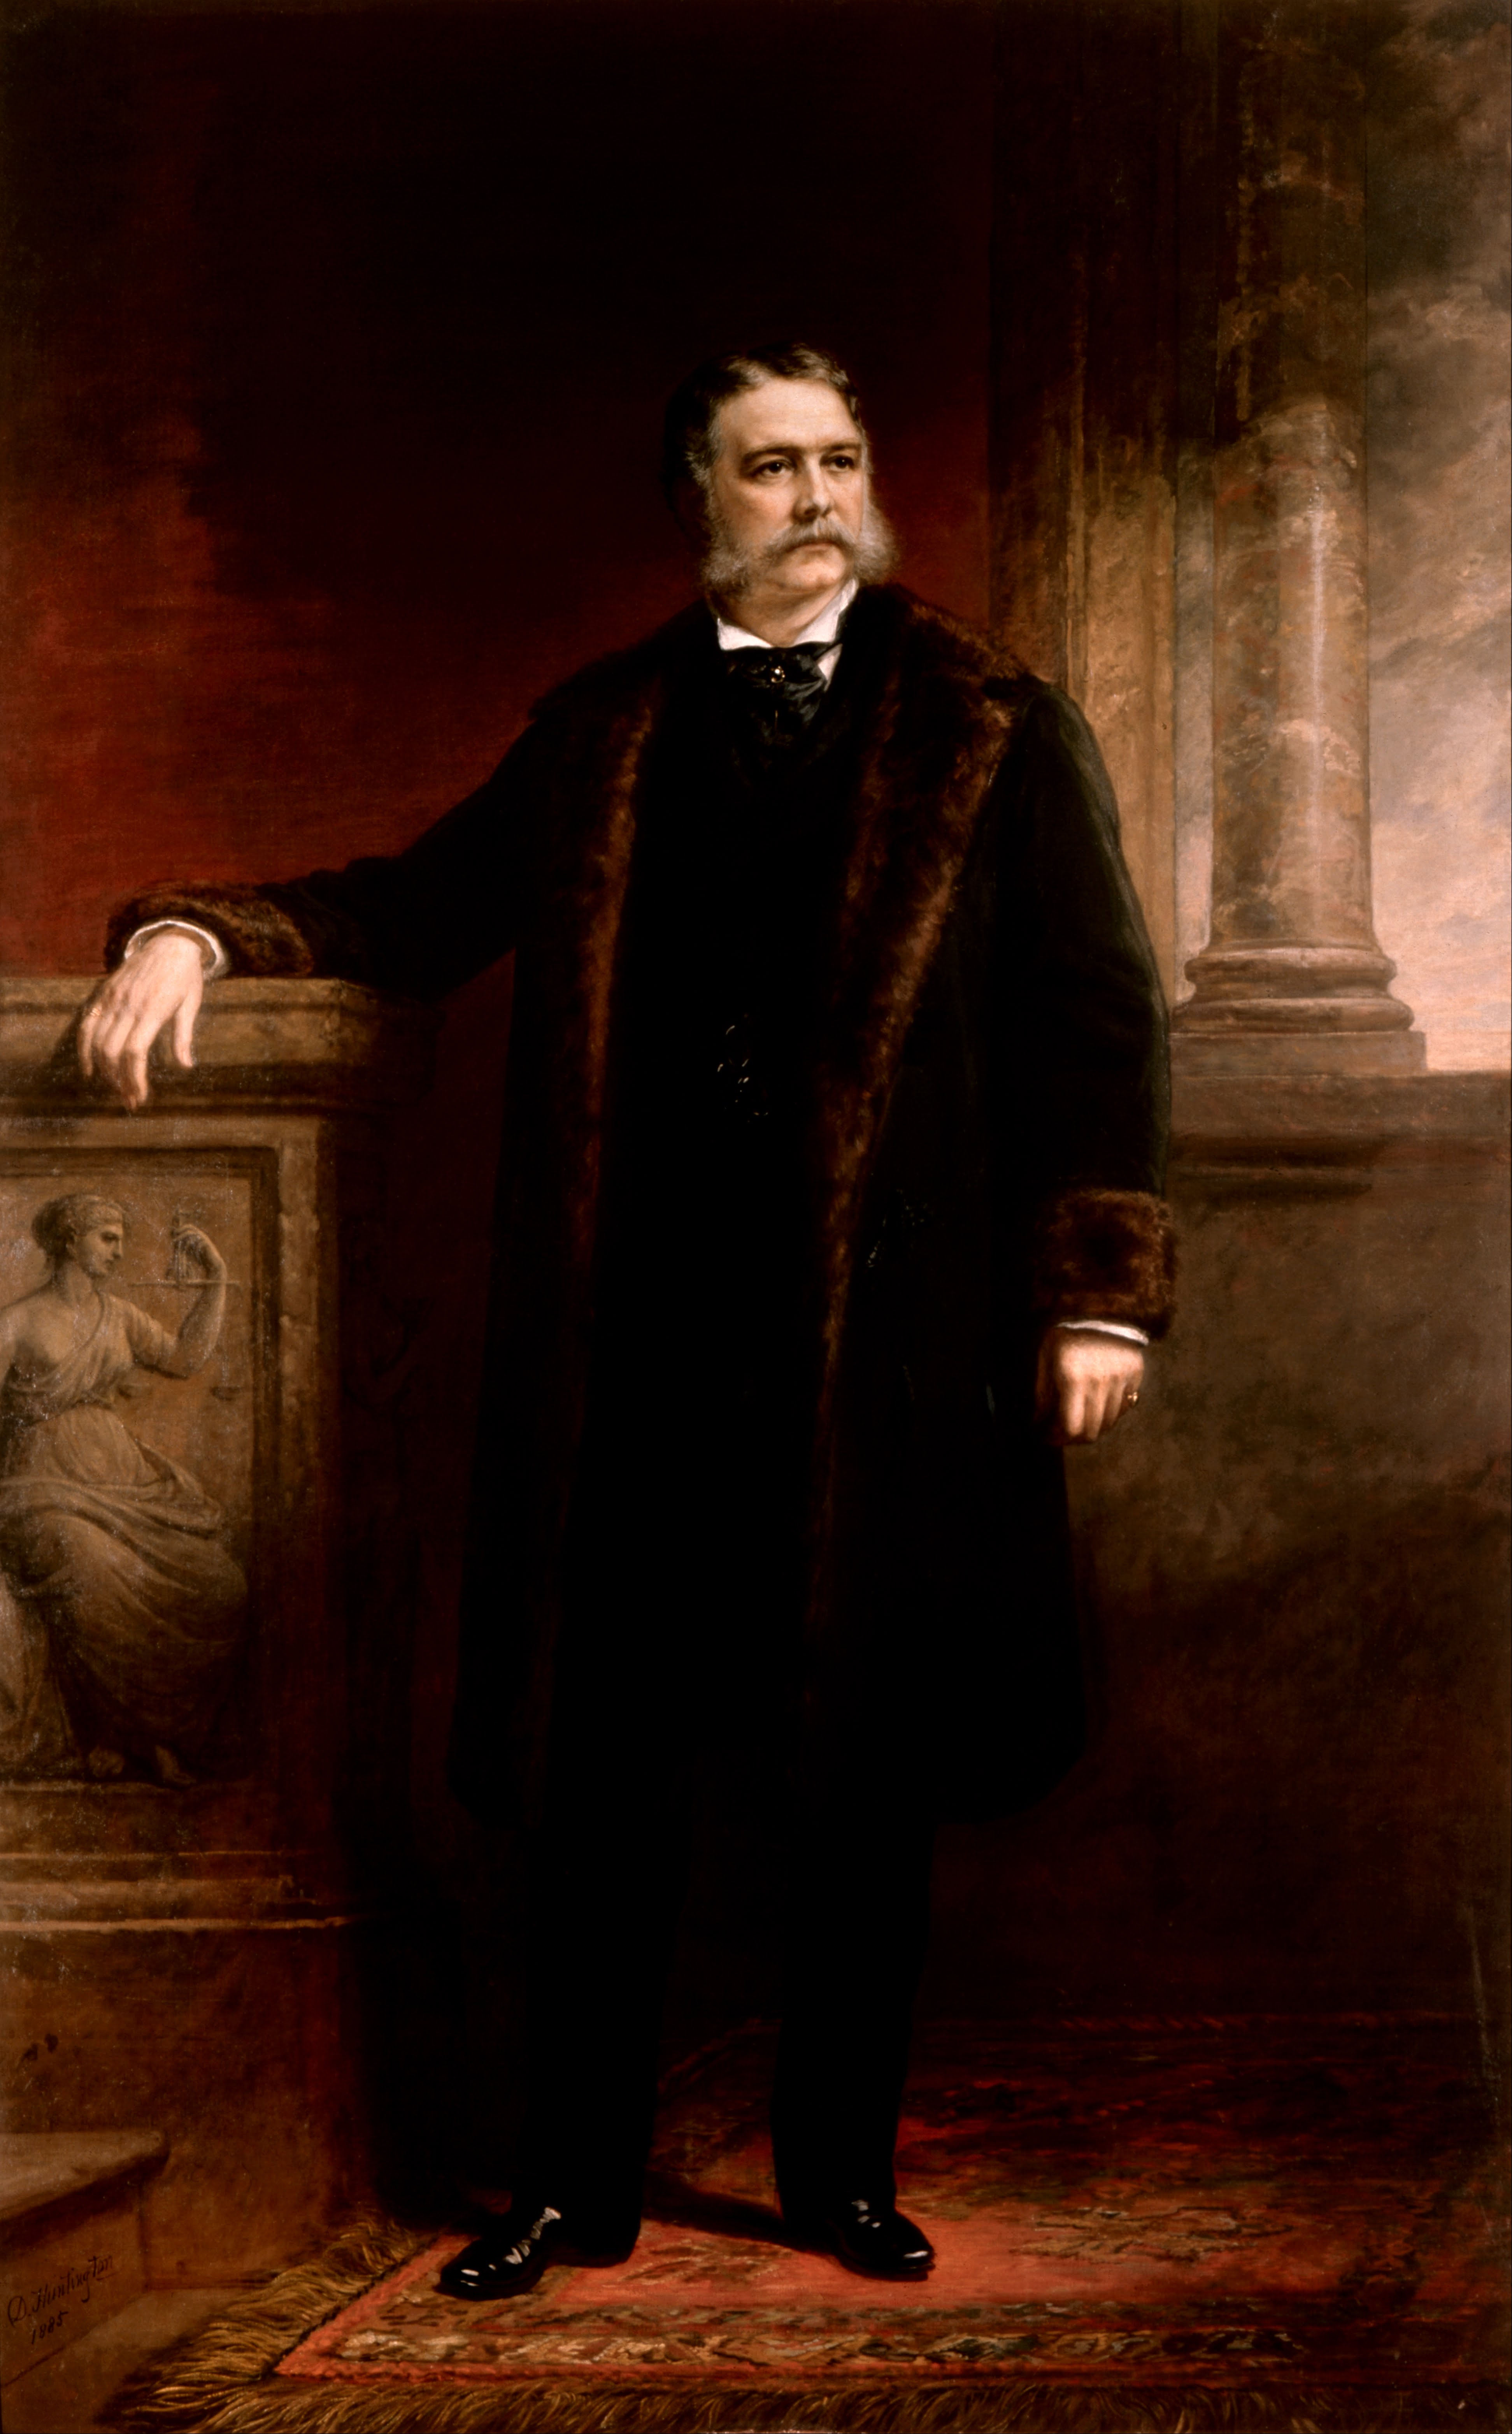 a biography of chester alan arthur Arthur, chester alan, (1829 - 1886) image courtesy library of congress arthur, chester alan, a vice president and 21st president of the united states born in.